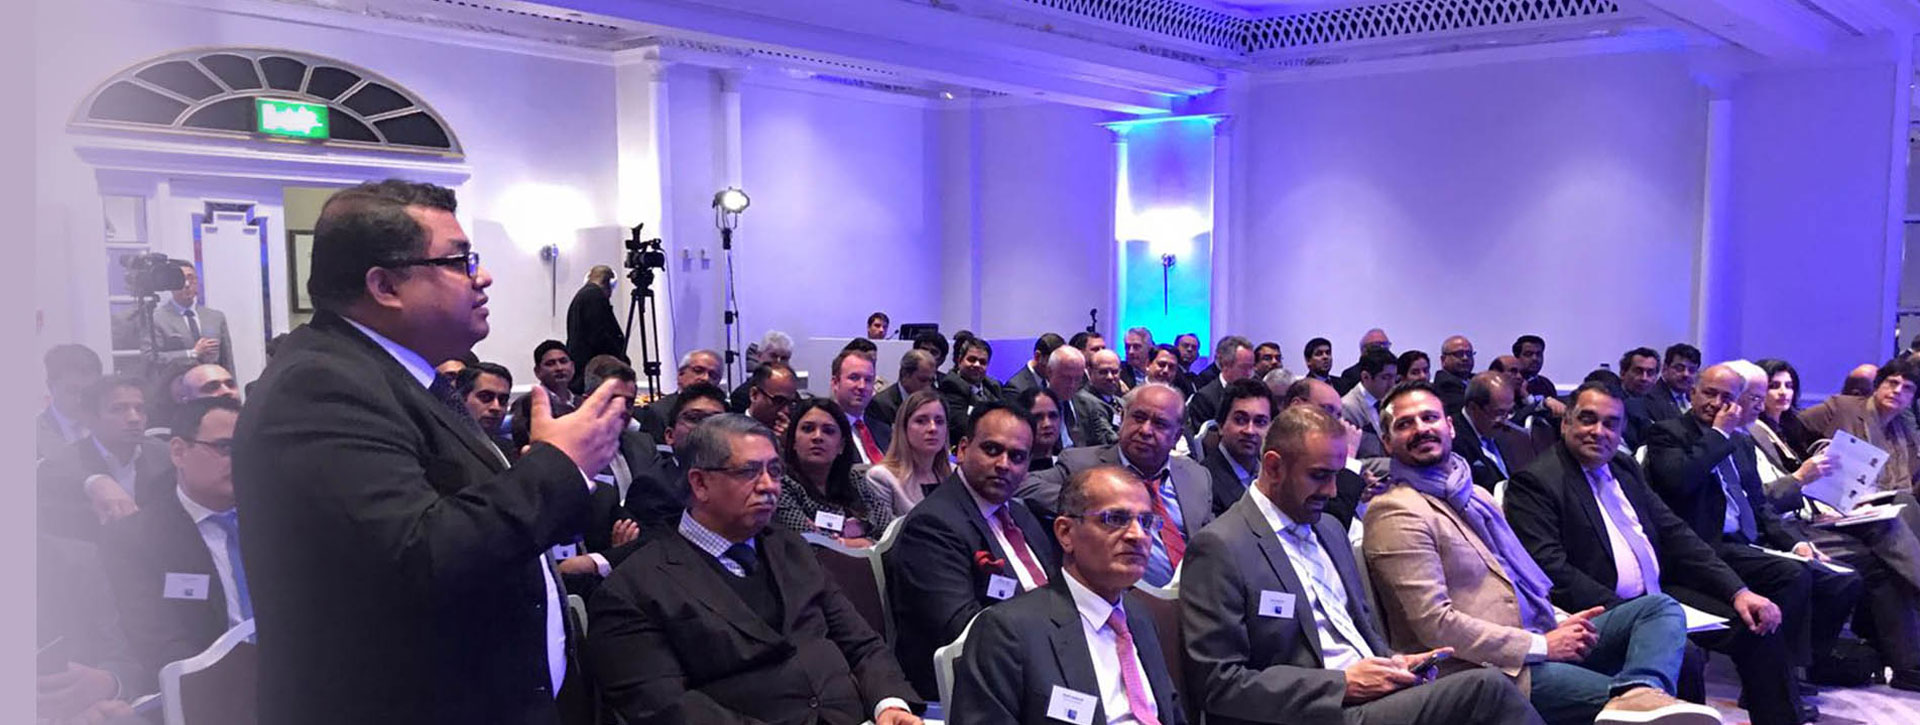 High Commissioner of India to the UK, Y K Sinha(front row, fifth from left) at a recent India Inc event.